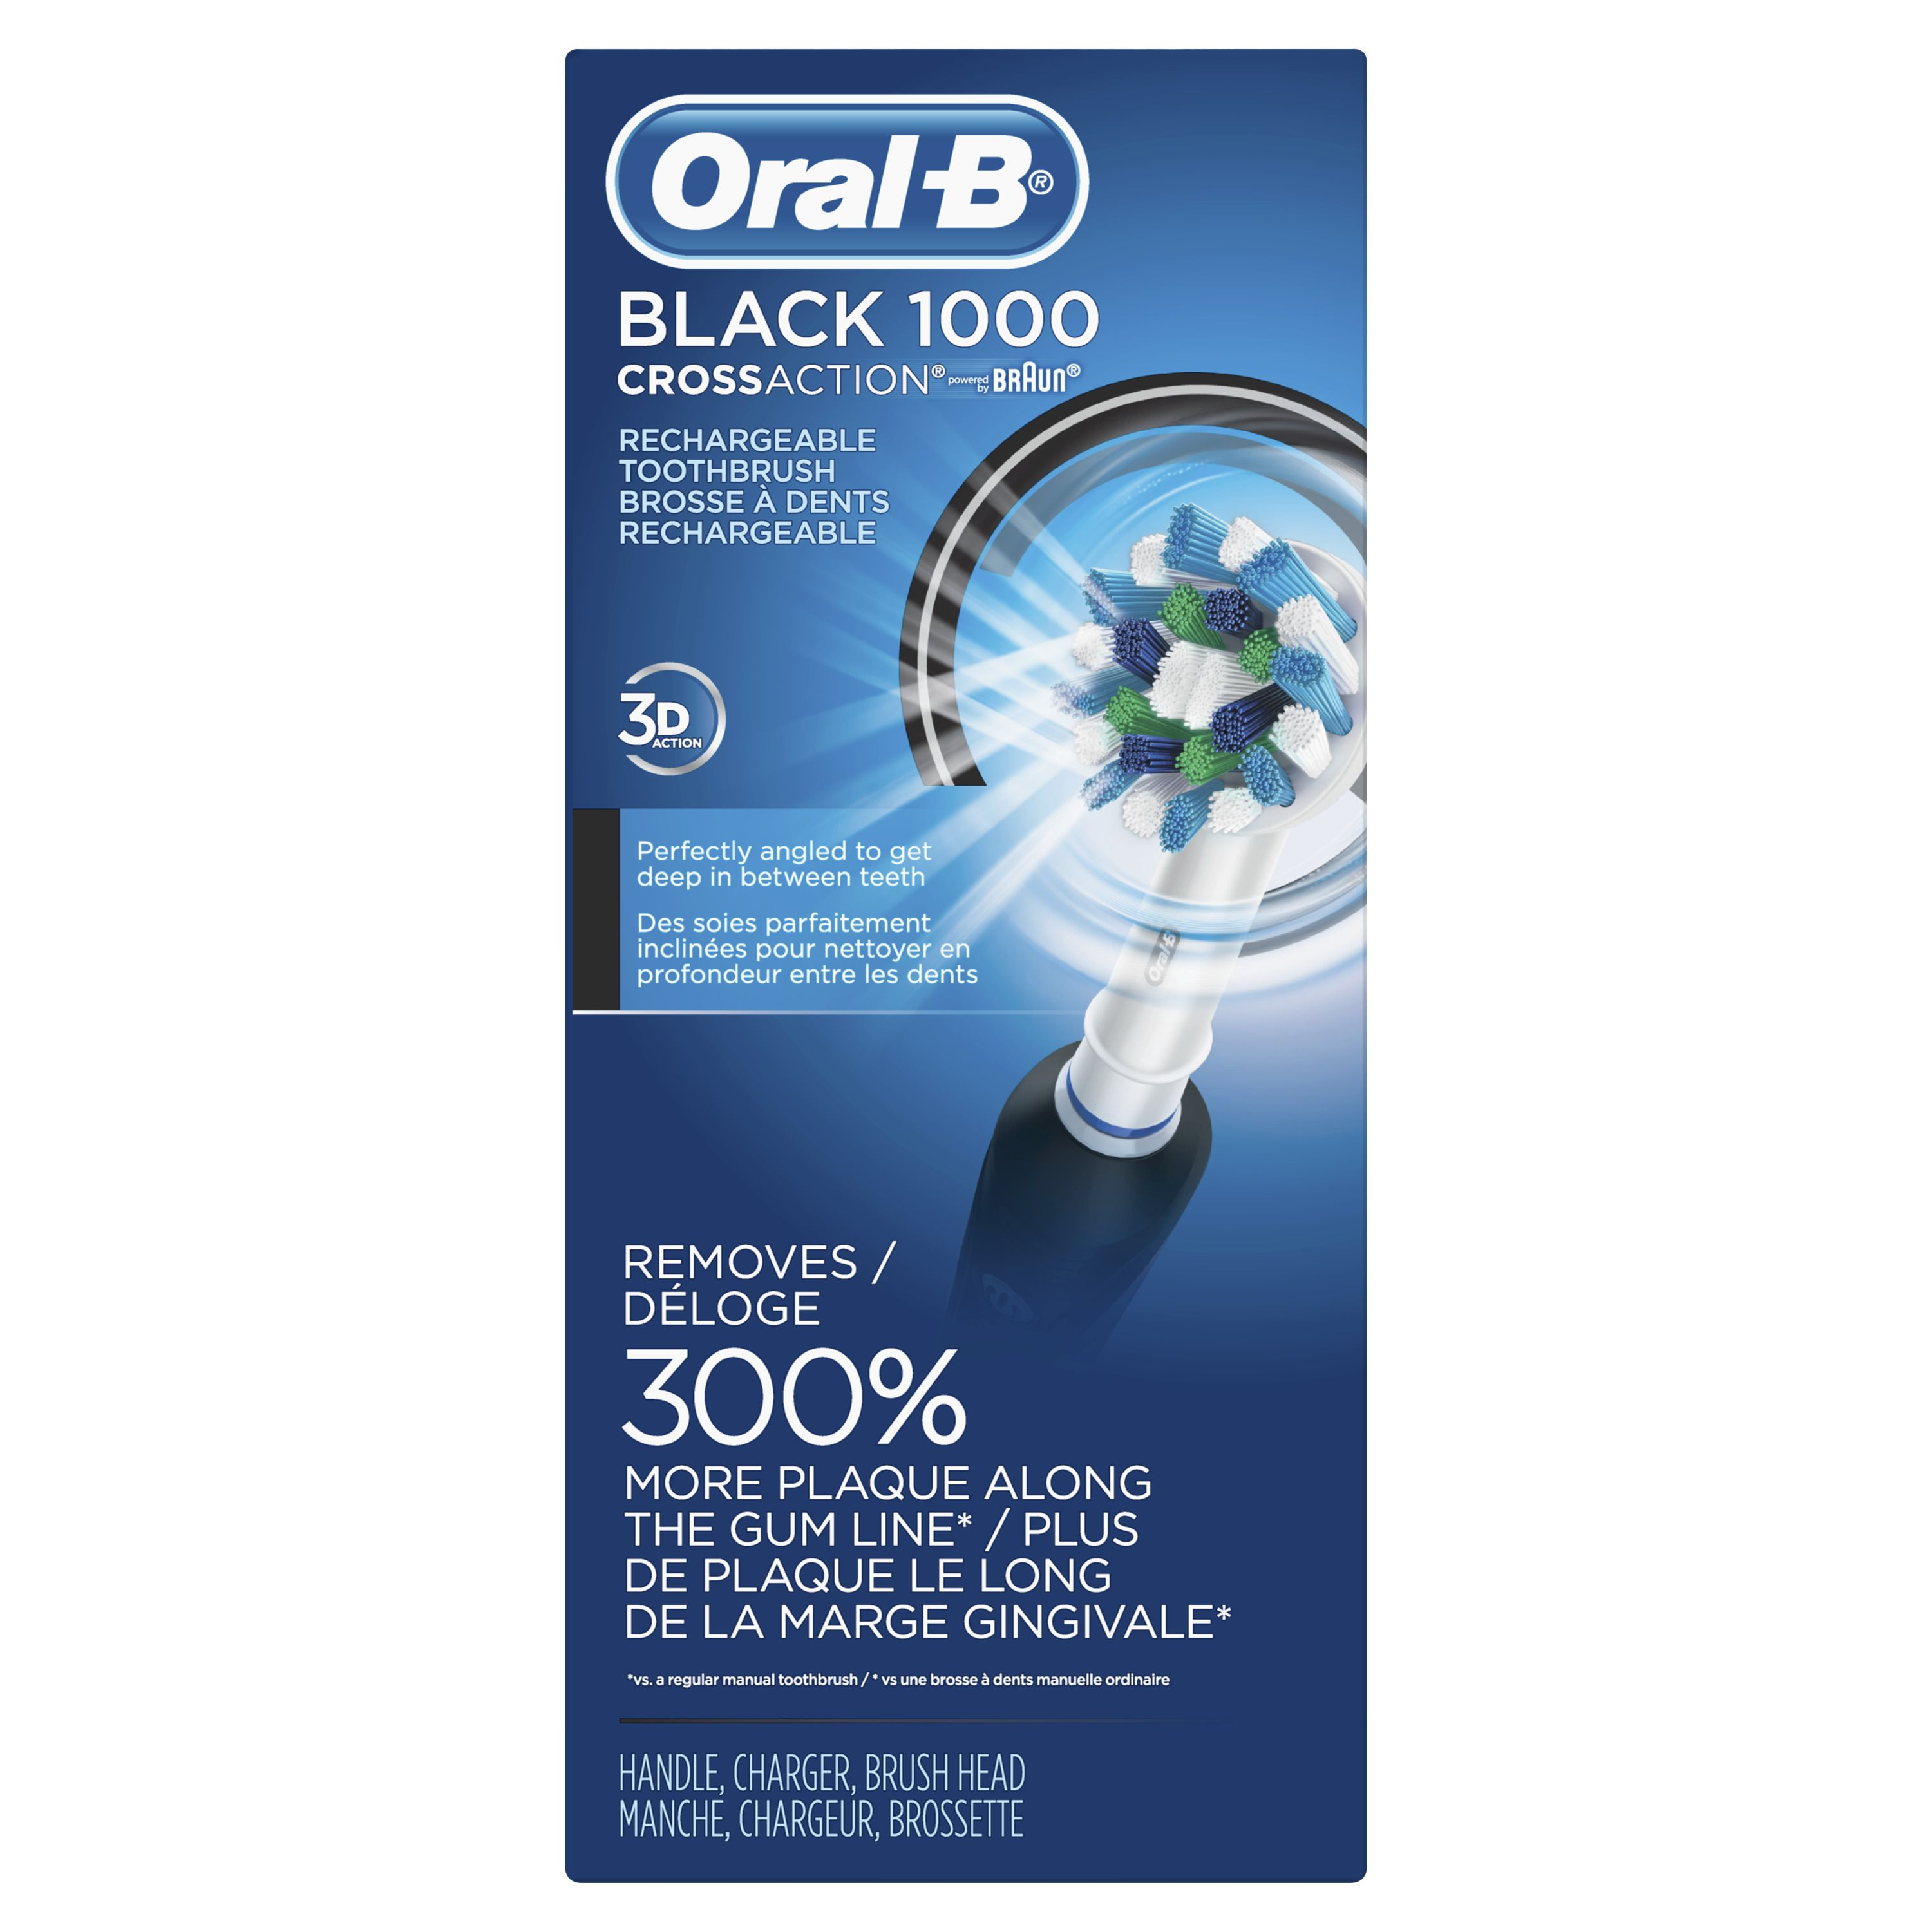 OralB 1000 (Mail In Rebate Available) CrossAction